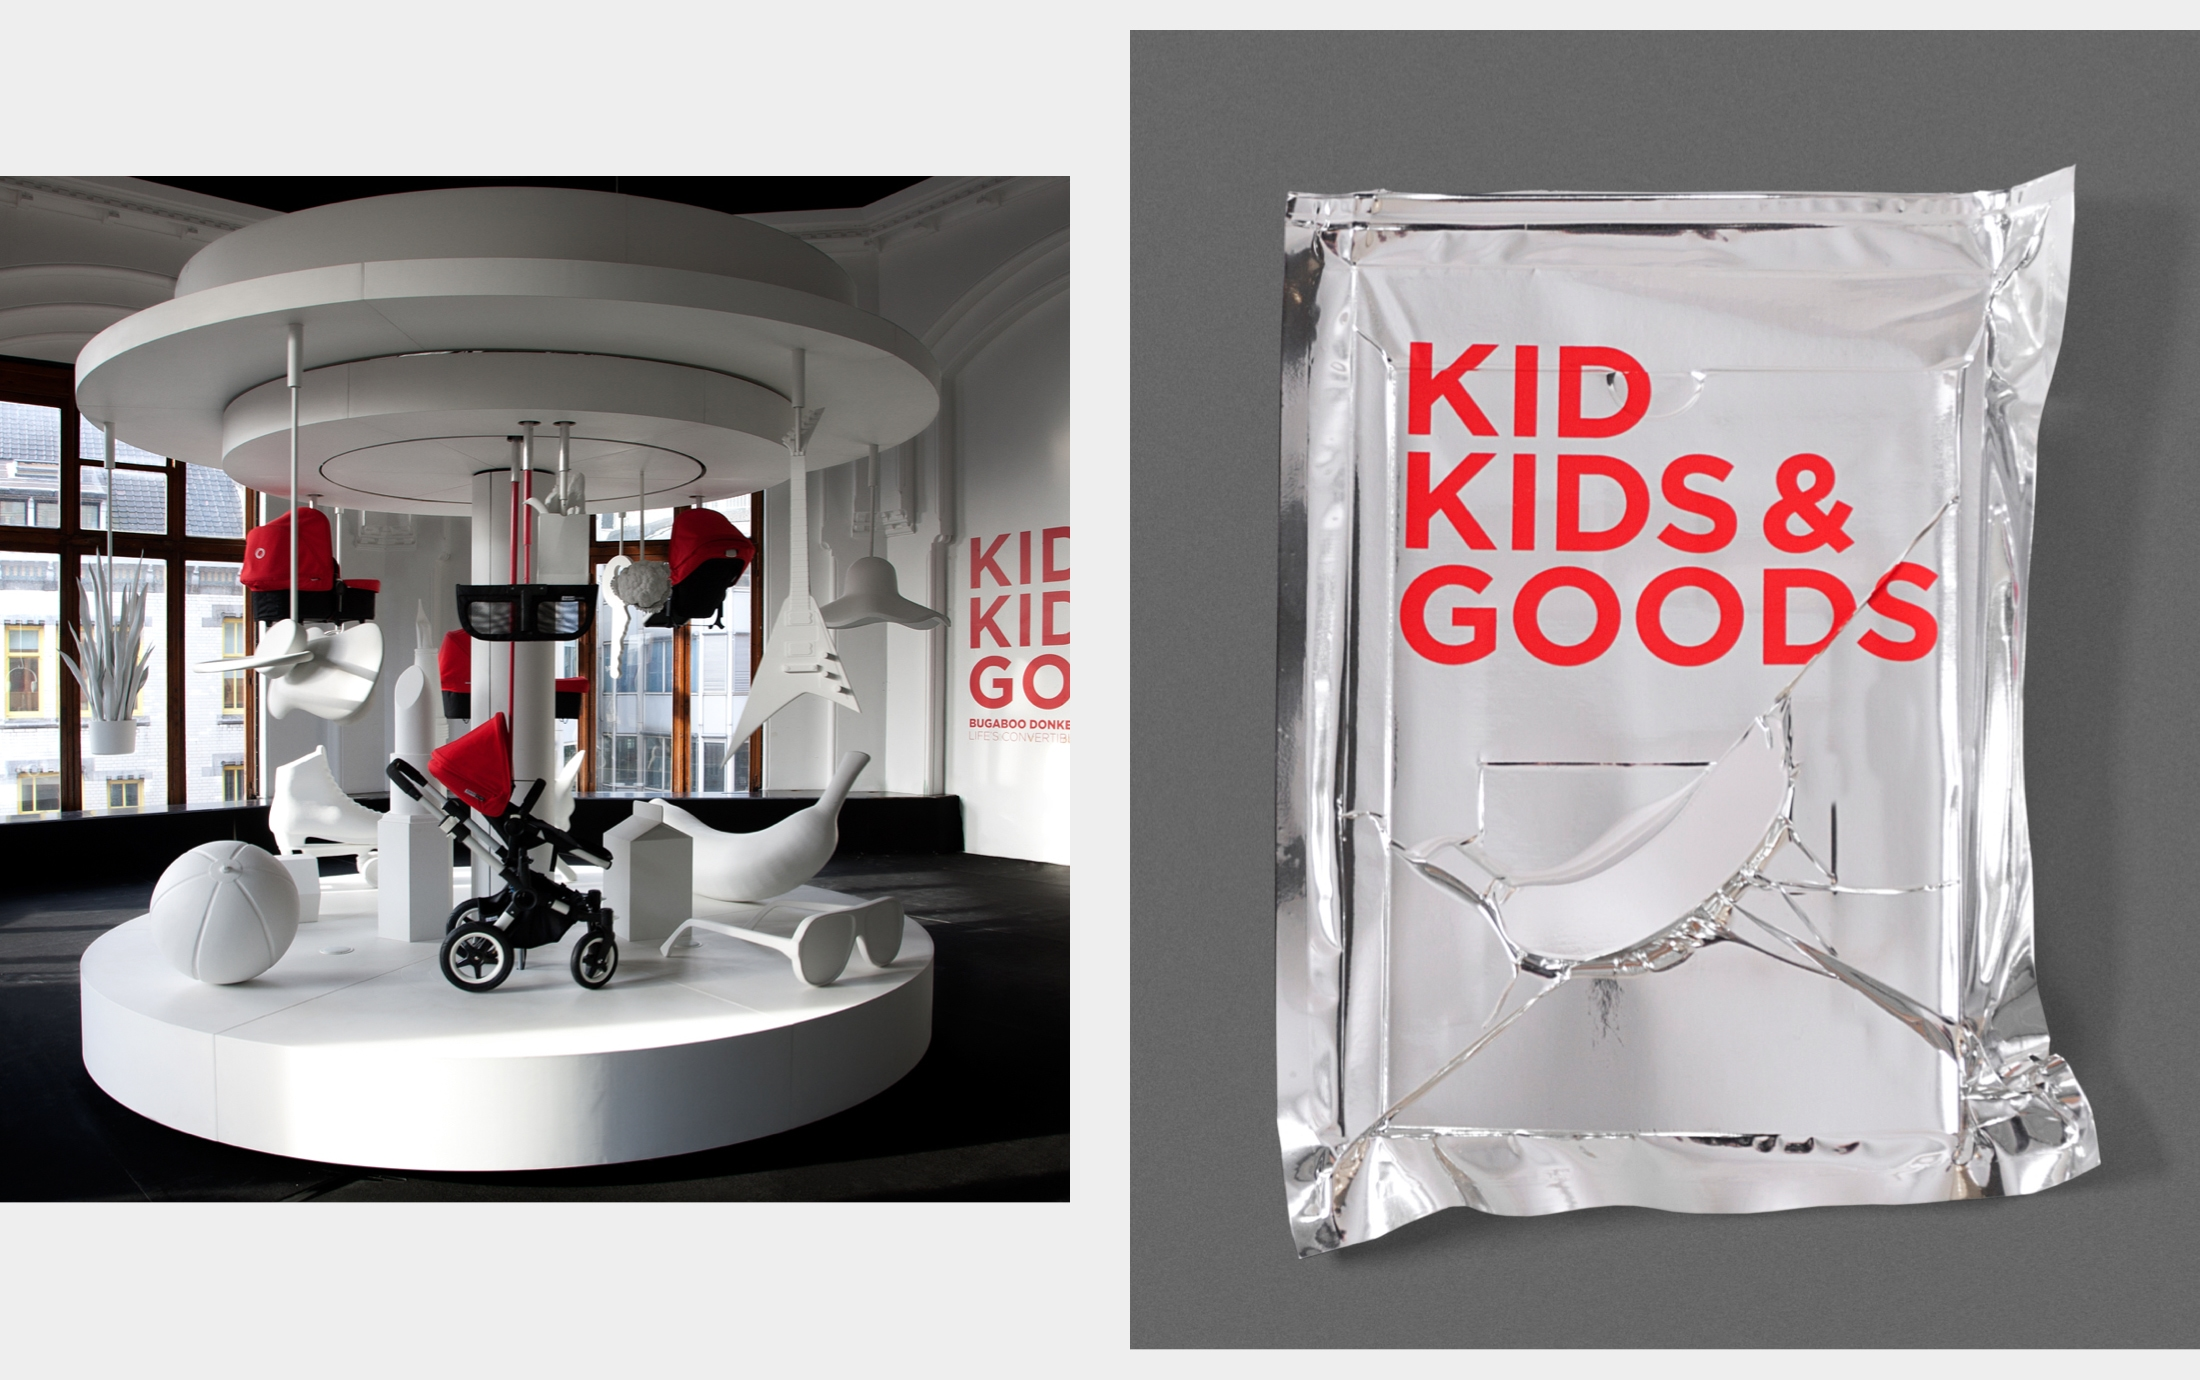 Kid, Kids and Goods